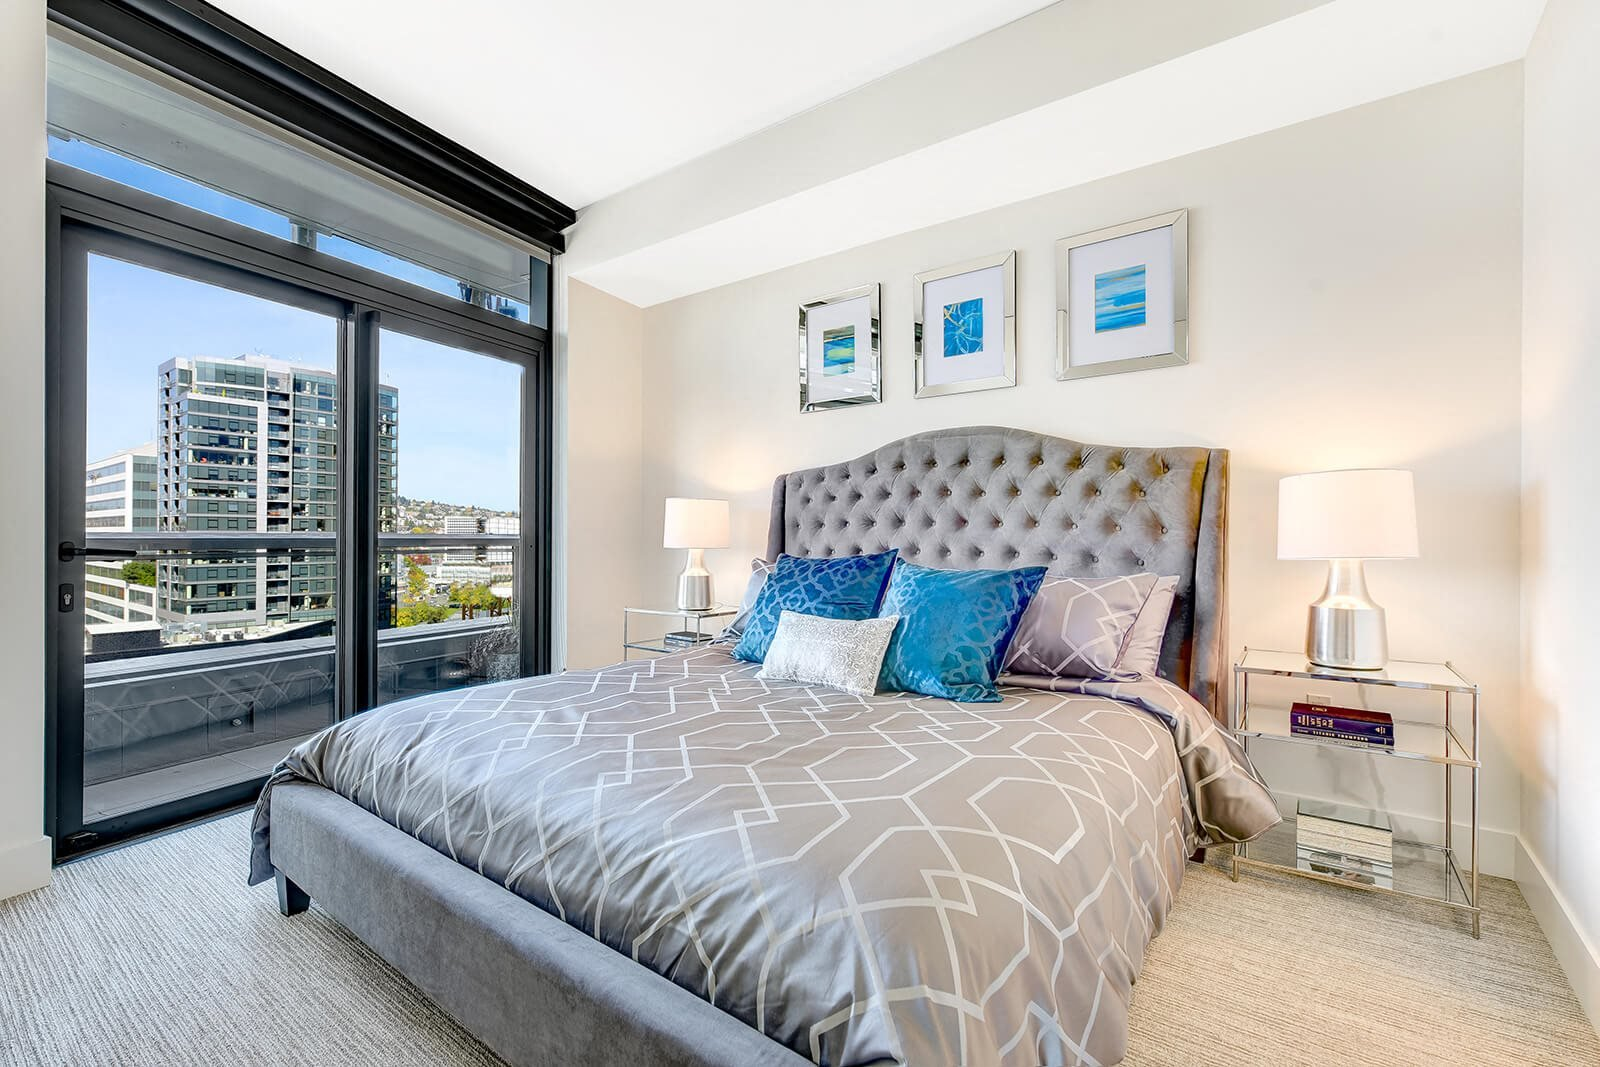 Spacious, Comfortable Bedrooms at Cirrus, Seattle, WA